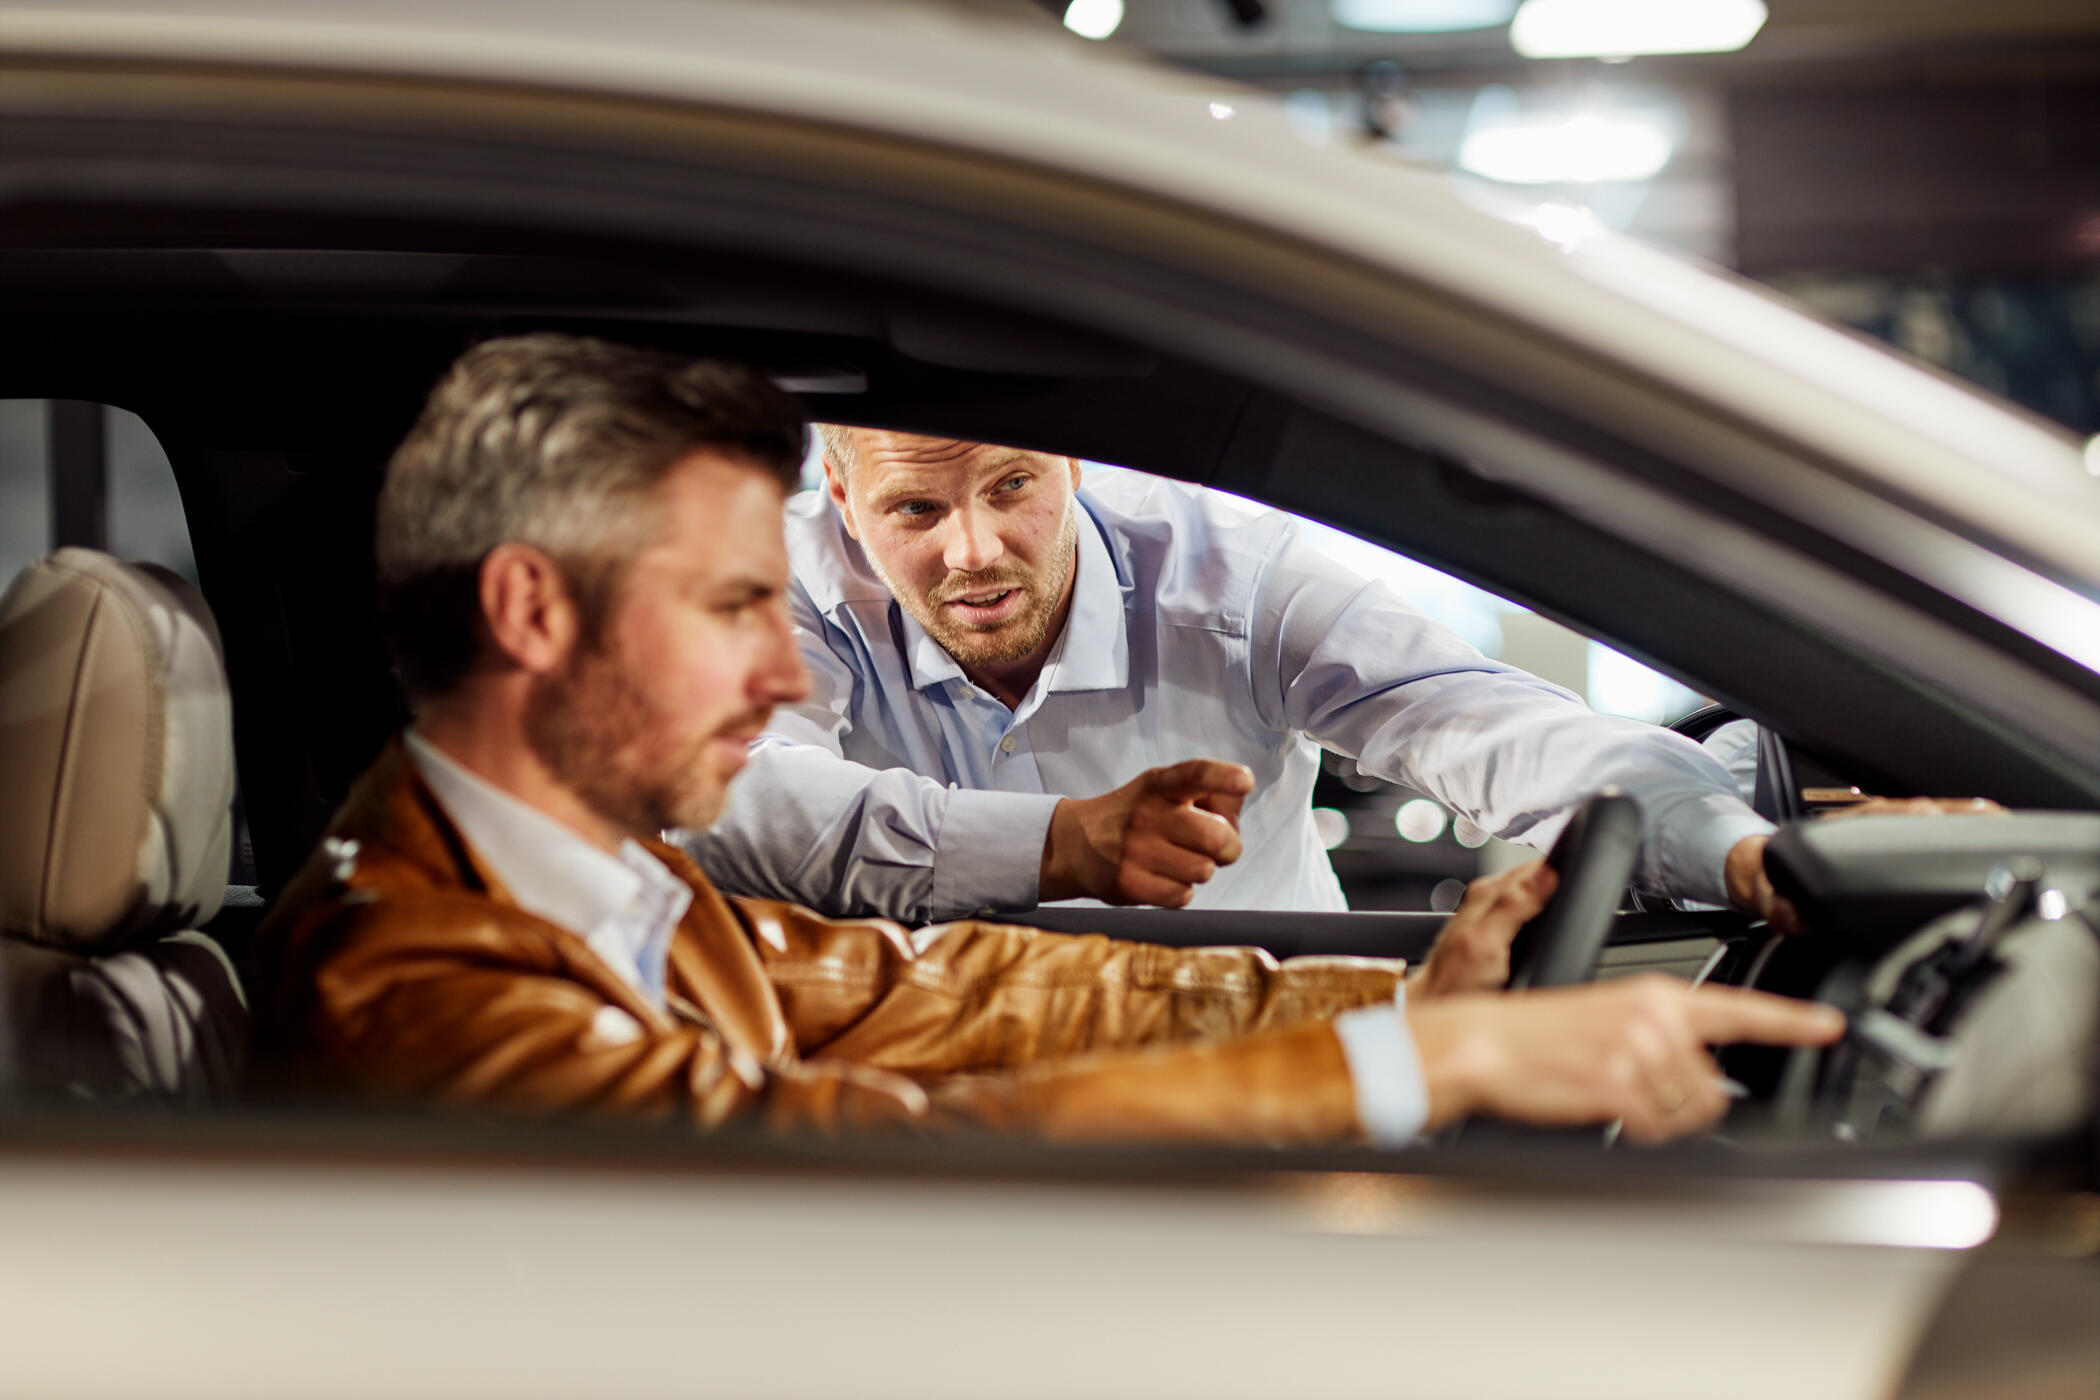 Customer test drives car with car salesman giving instructions